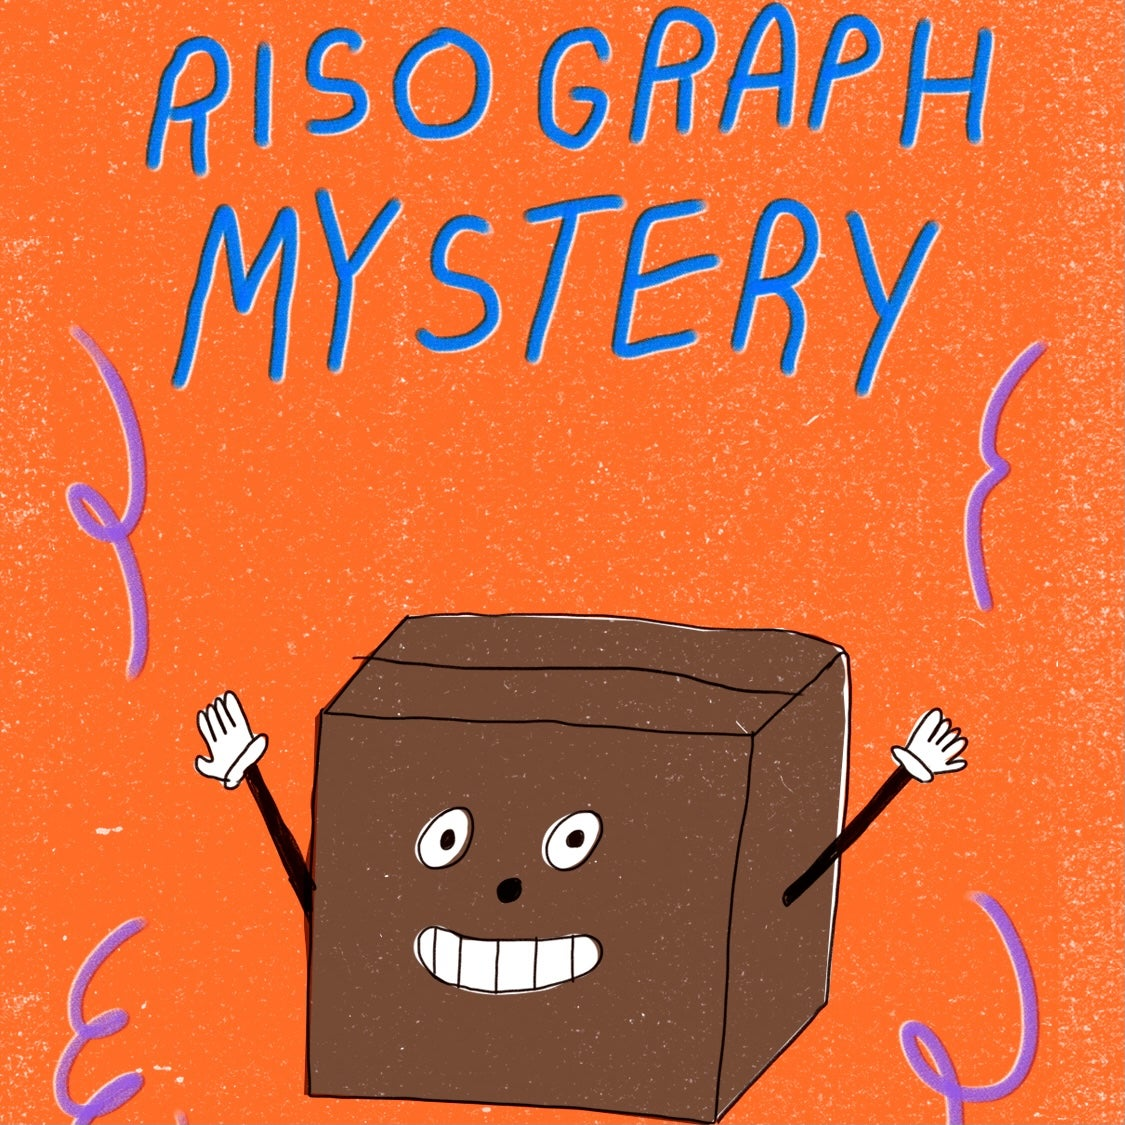 Image of Risograph Mystery Box